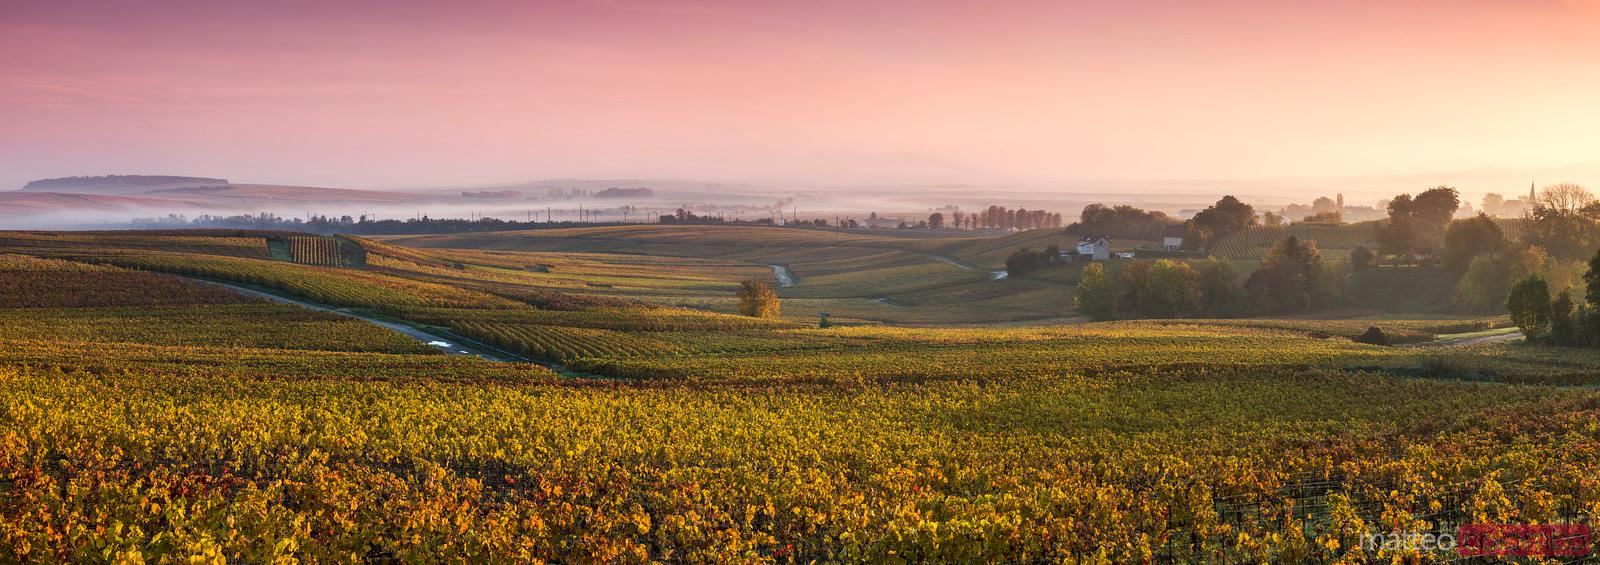 Panoramic of vineyards in autumn at dawn, Champagne, France